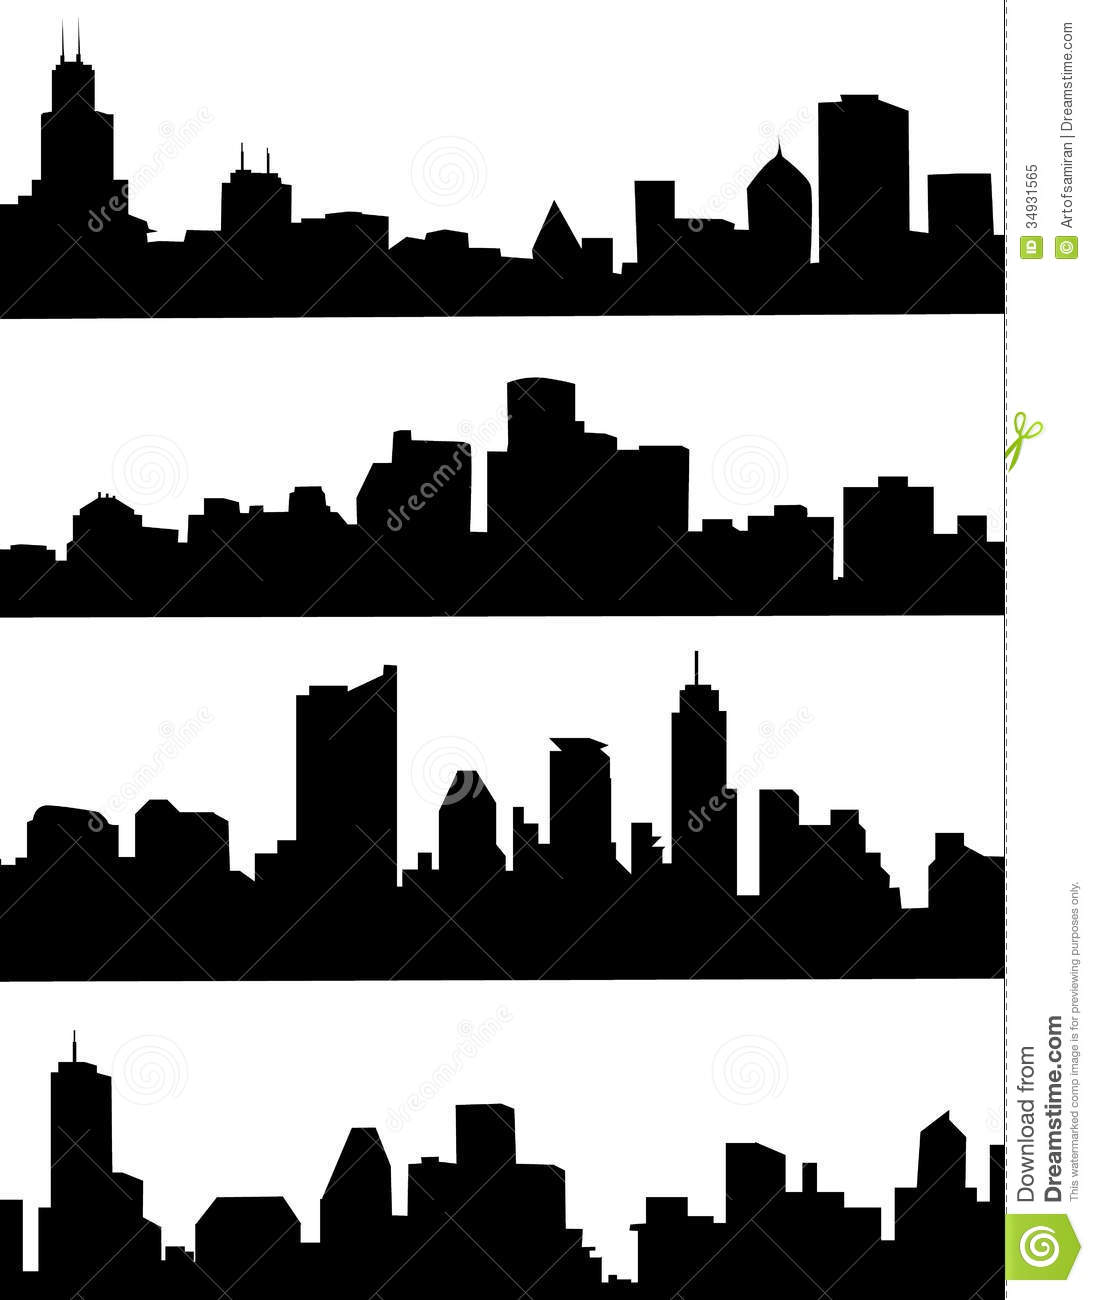 Cityscape Silhouette Stock Vector. Illustration Of City